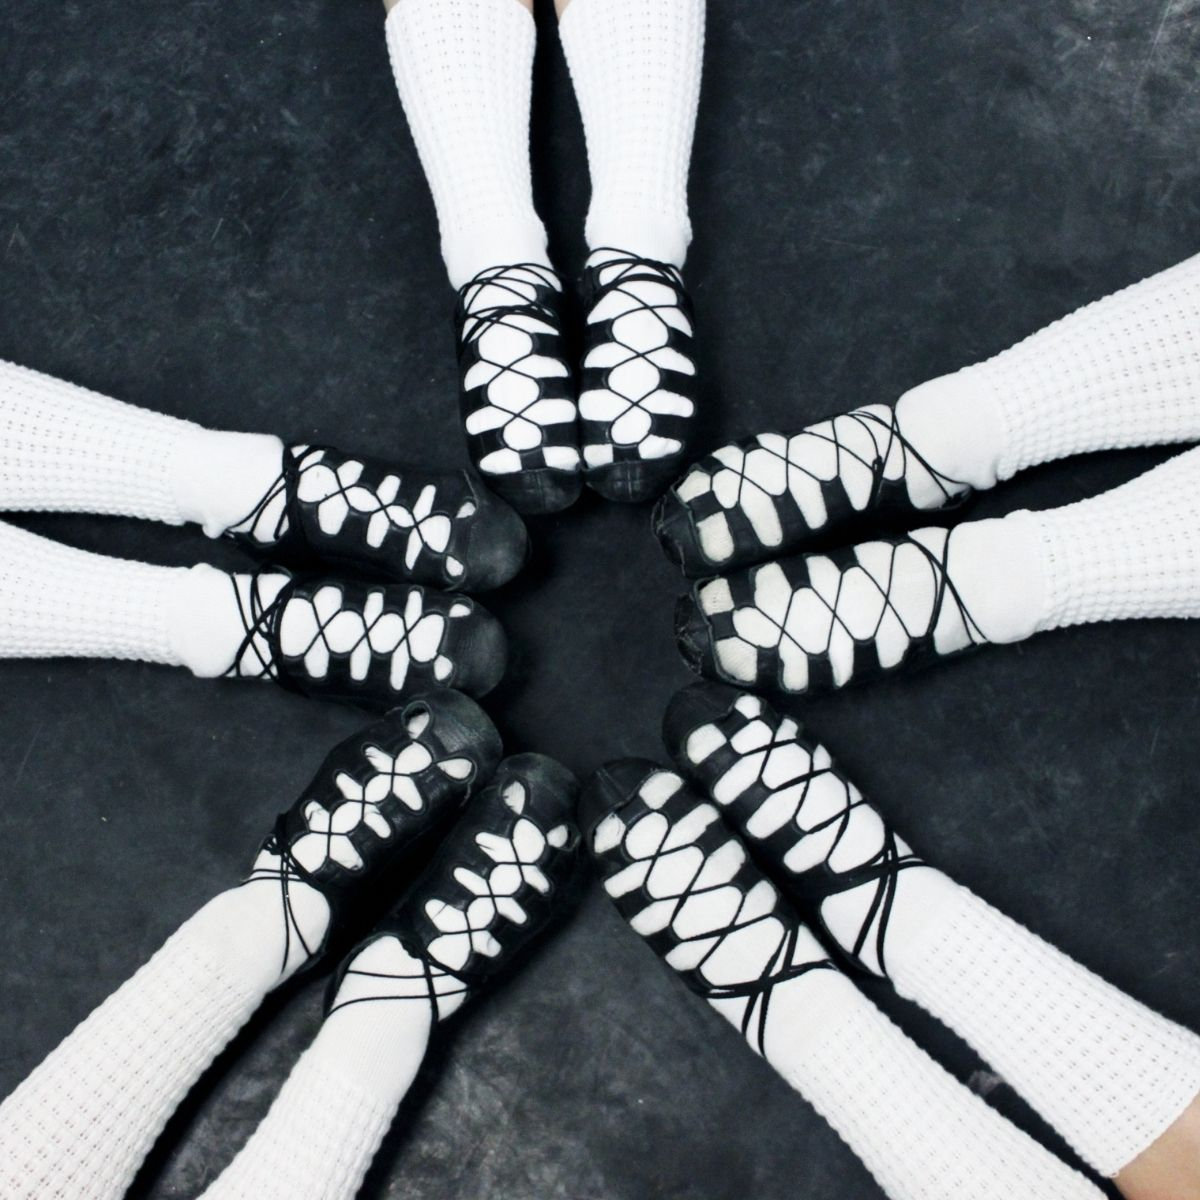 Five pairs of legs with white socks and Irish soft dance shoes in a circle